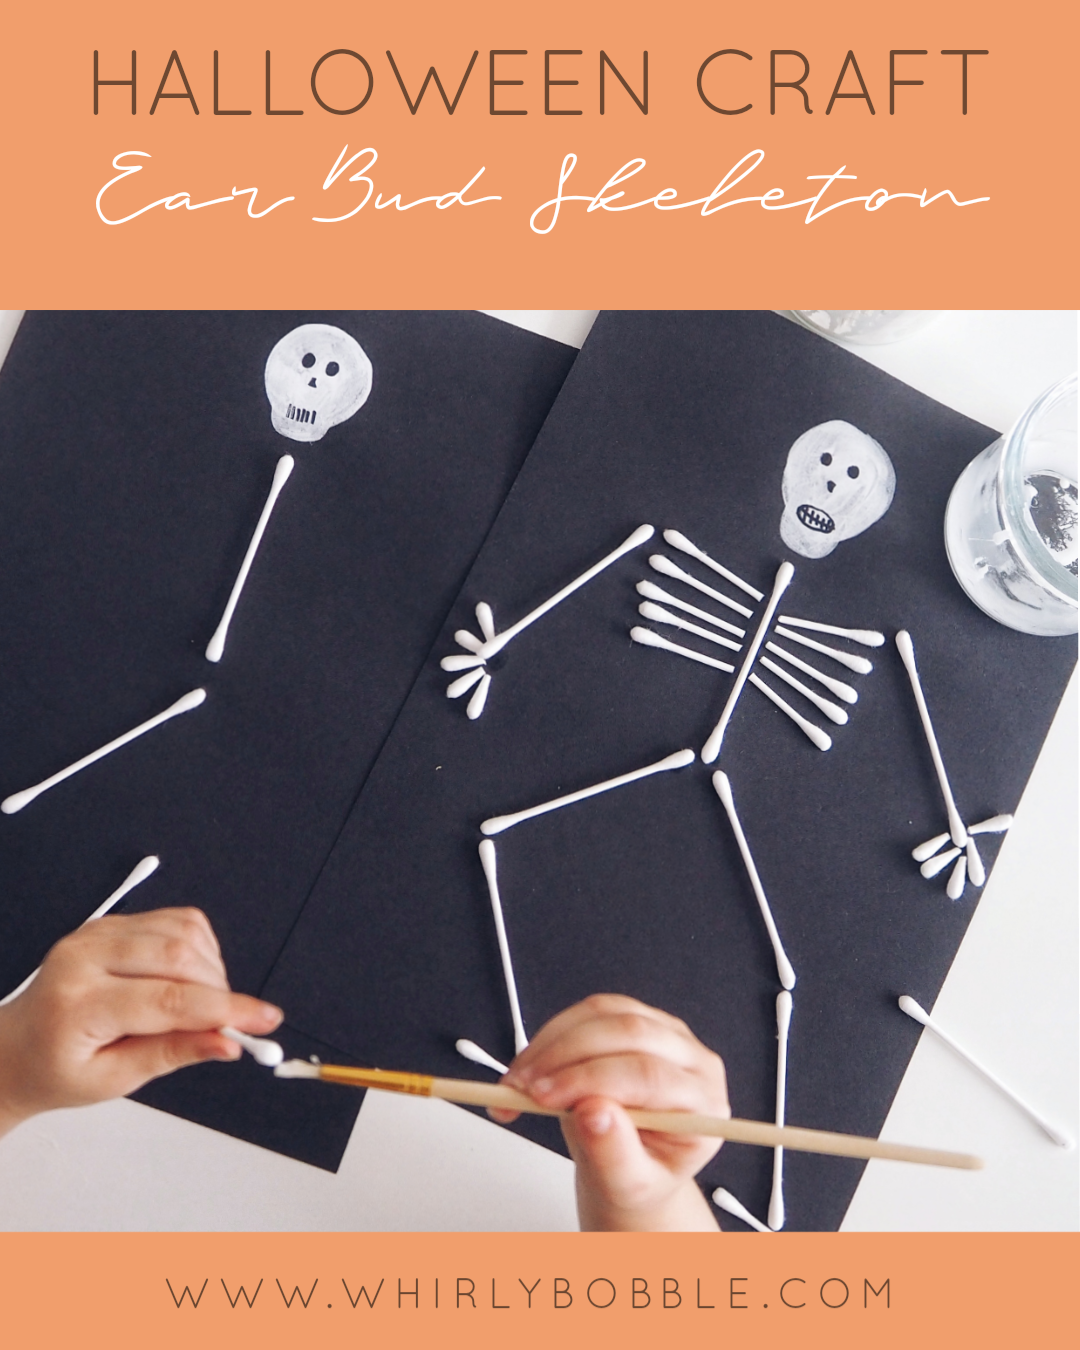 Halloween Craft: Cotton Bud Skeleton